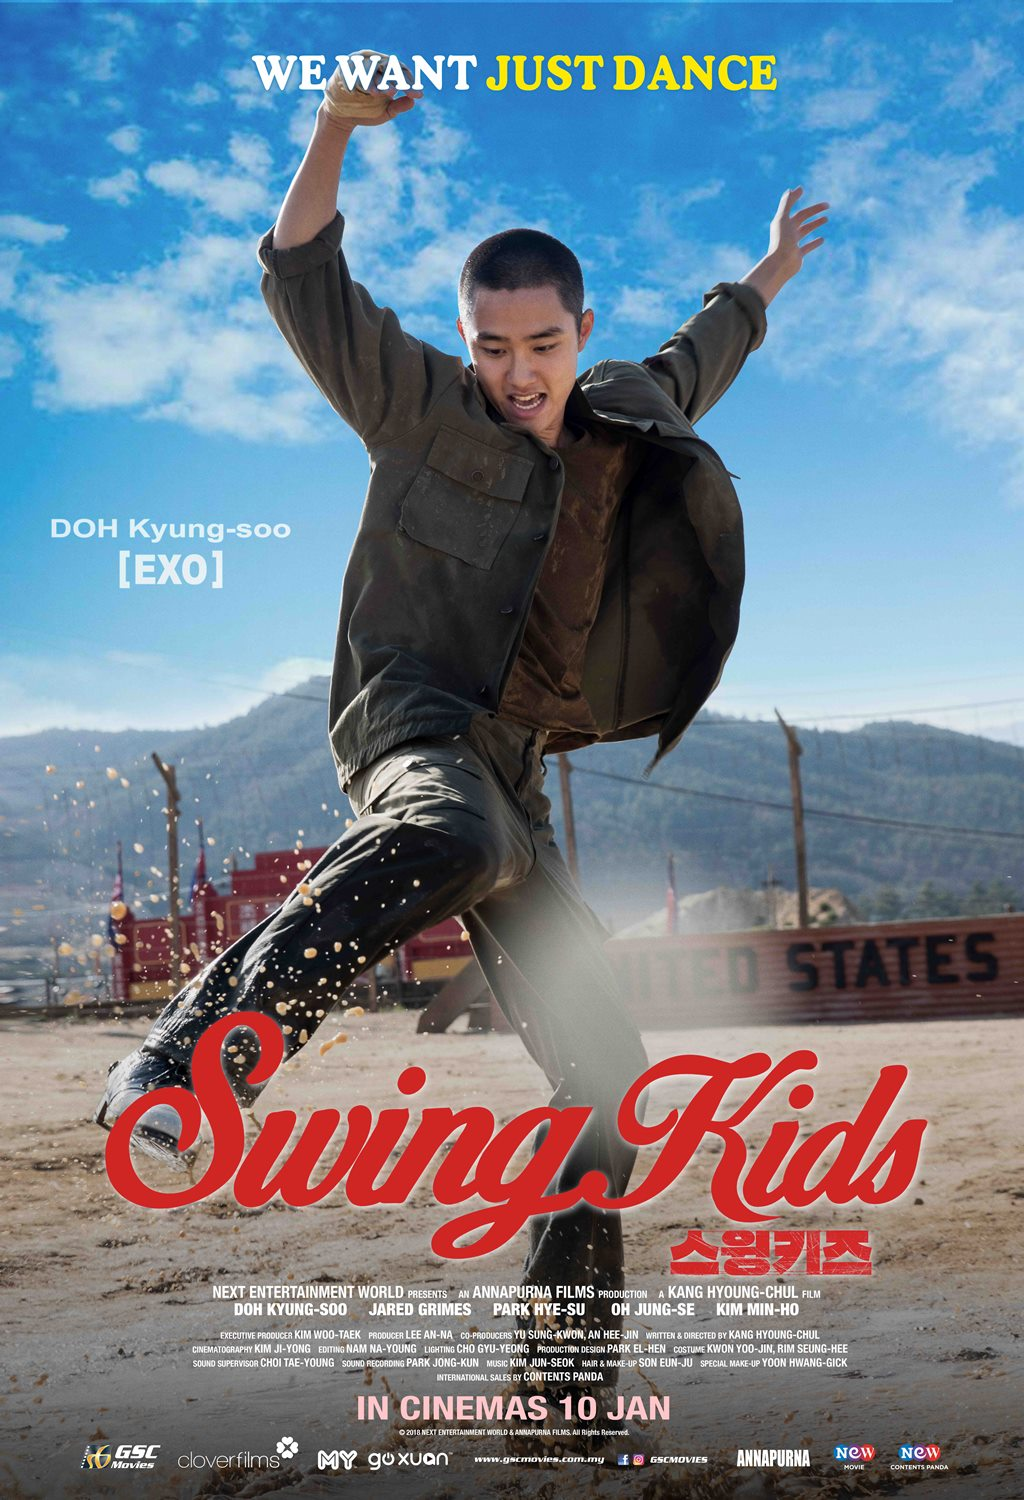 Nonton Movie Swing Kids 2019 Subtitle Indonesia | SerialDrakor